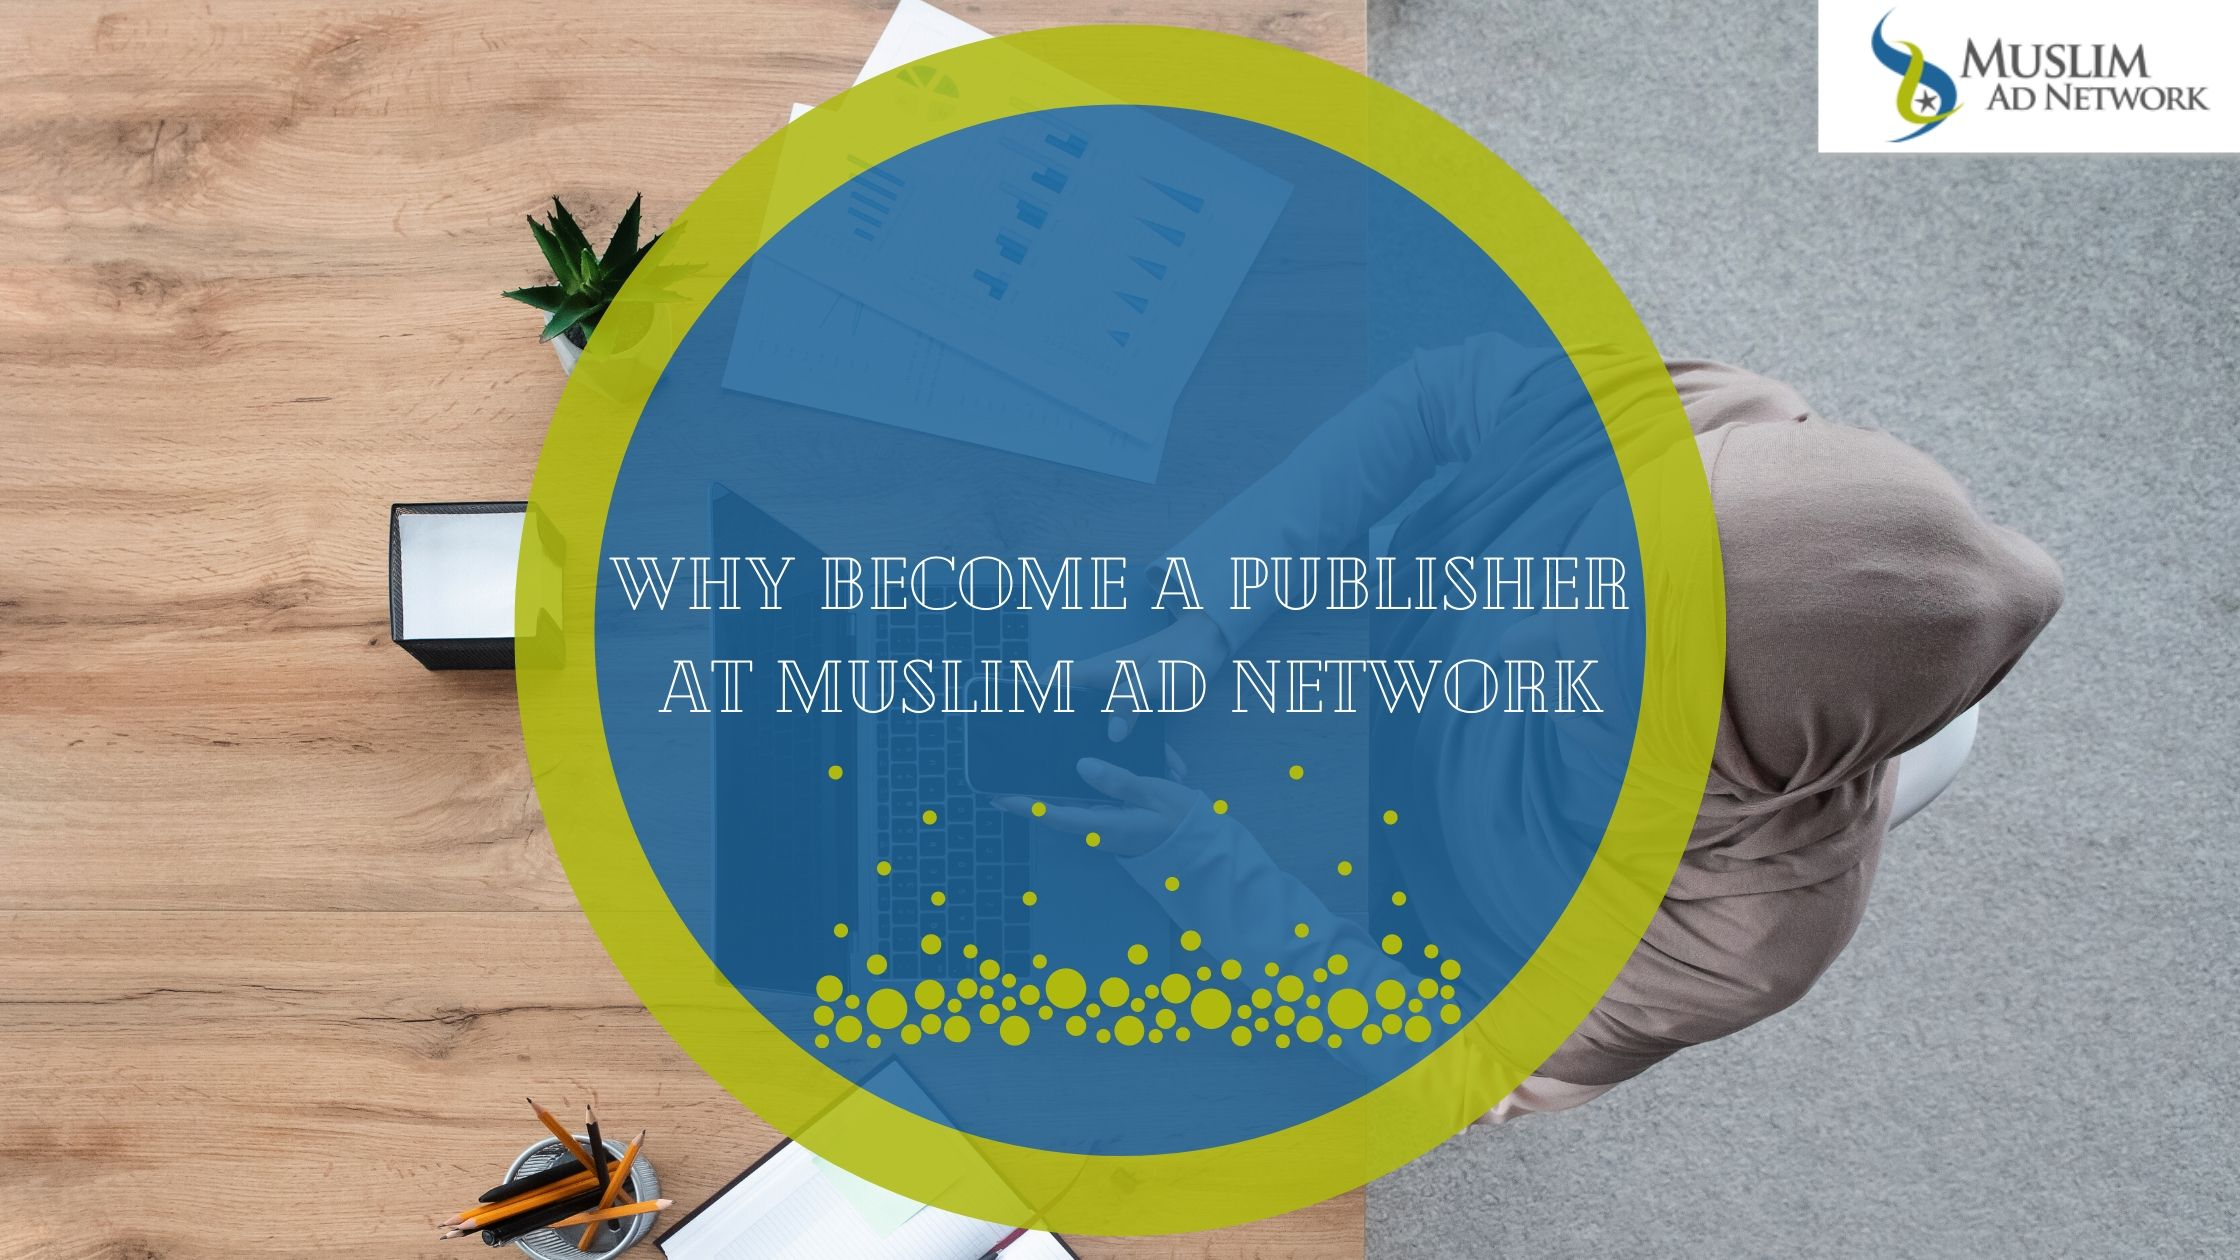 Become a publisher at Muslim Ad Network